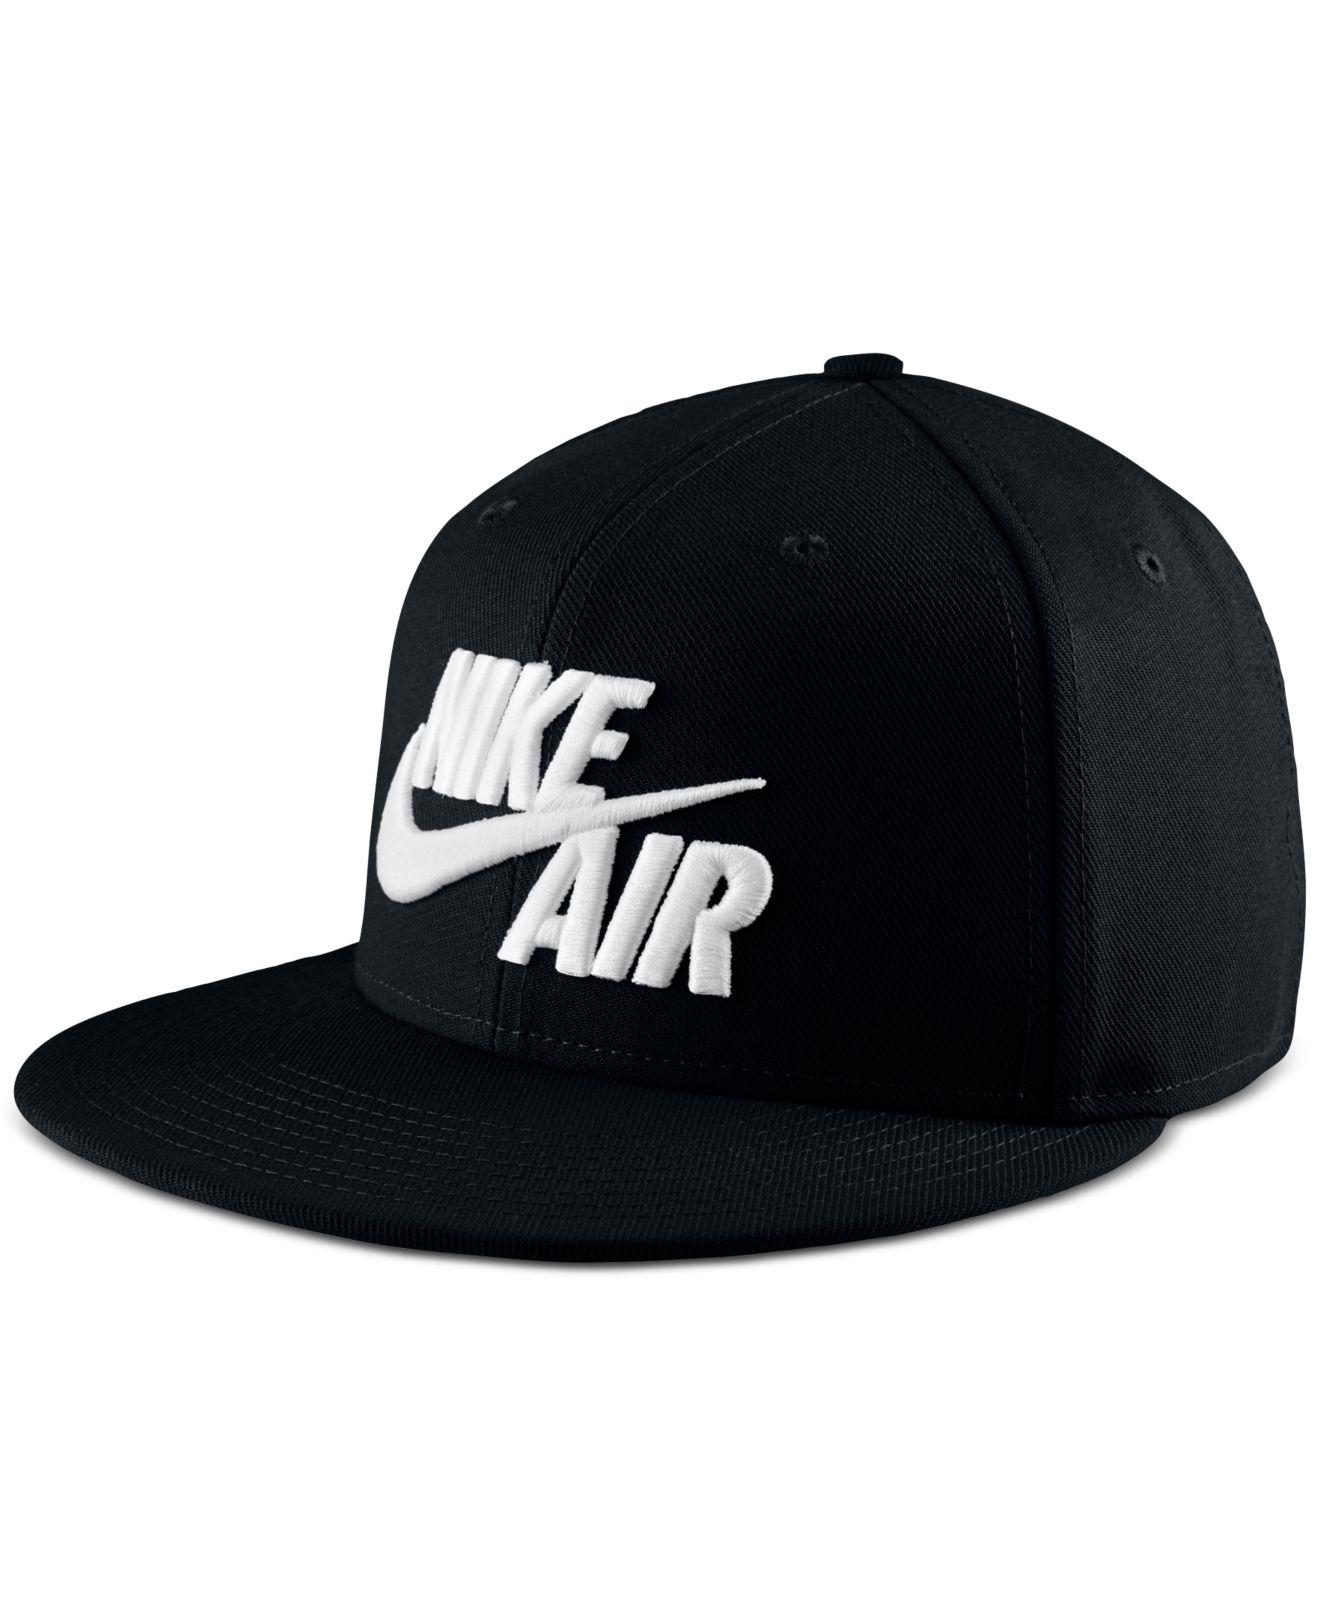 Lyst - Nike Sportswear Air Dri-fit Hat in Black for Men 28266a9f9c90